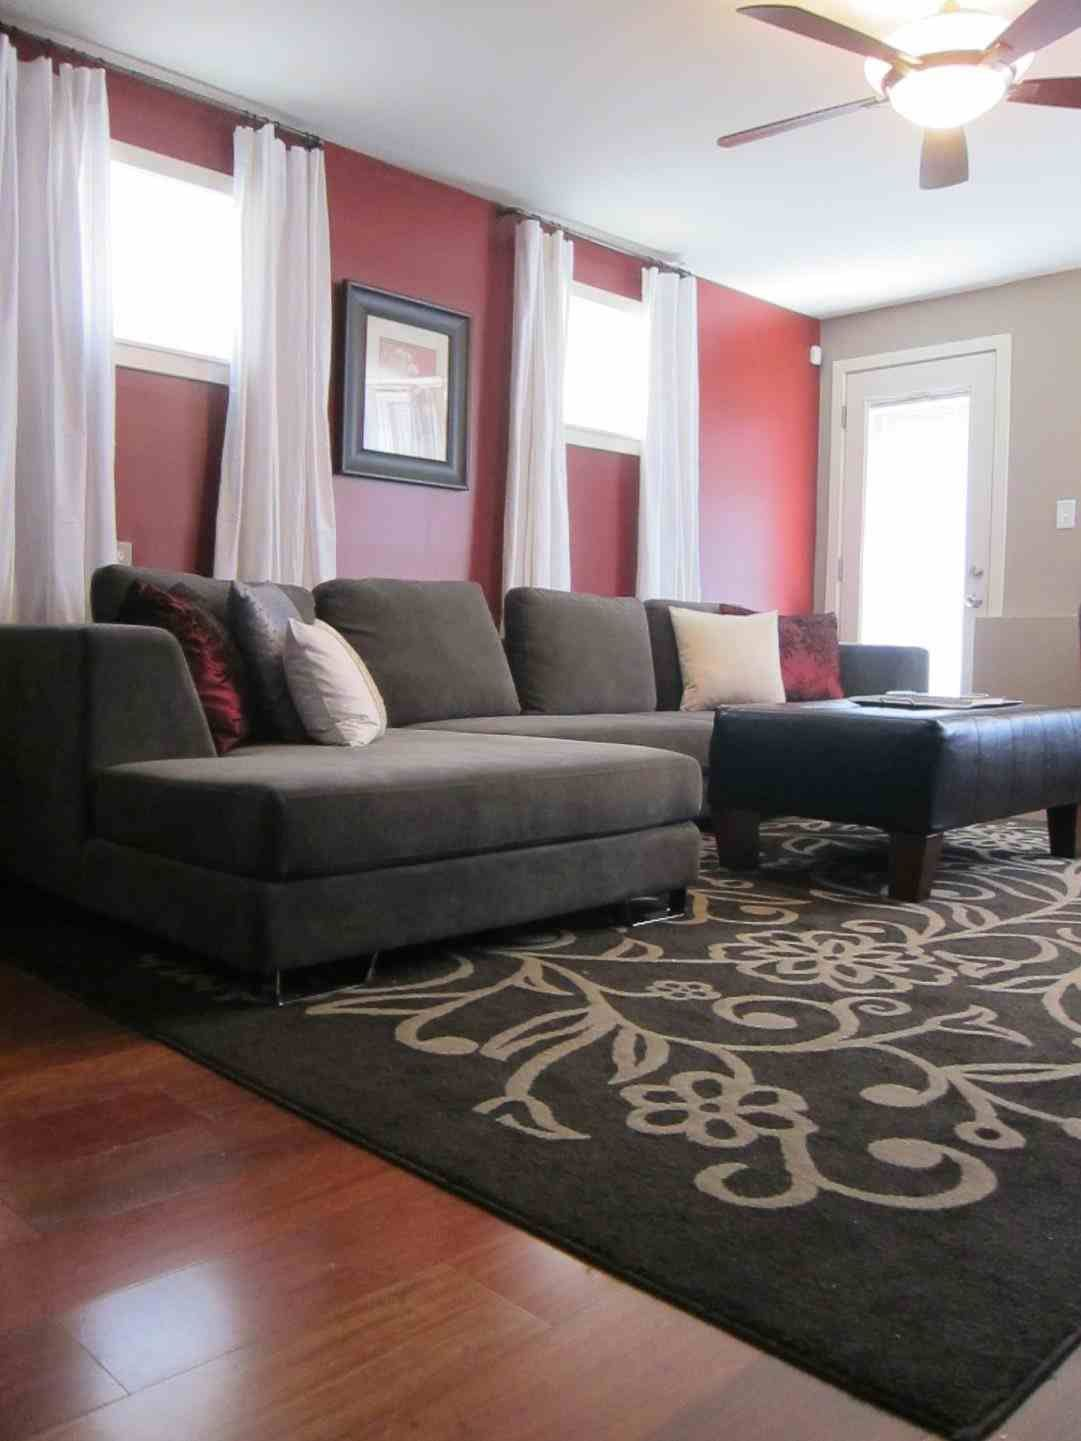 17 The Best Paint Colors For Master Bedrooms Ideas Red Living Room Walls Living Room Red Accent Walls In Living Room